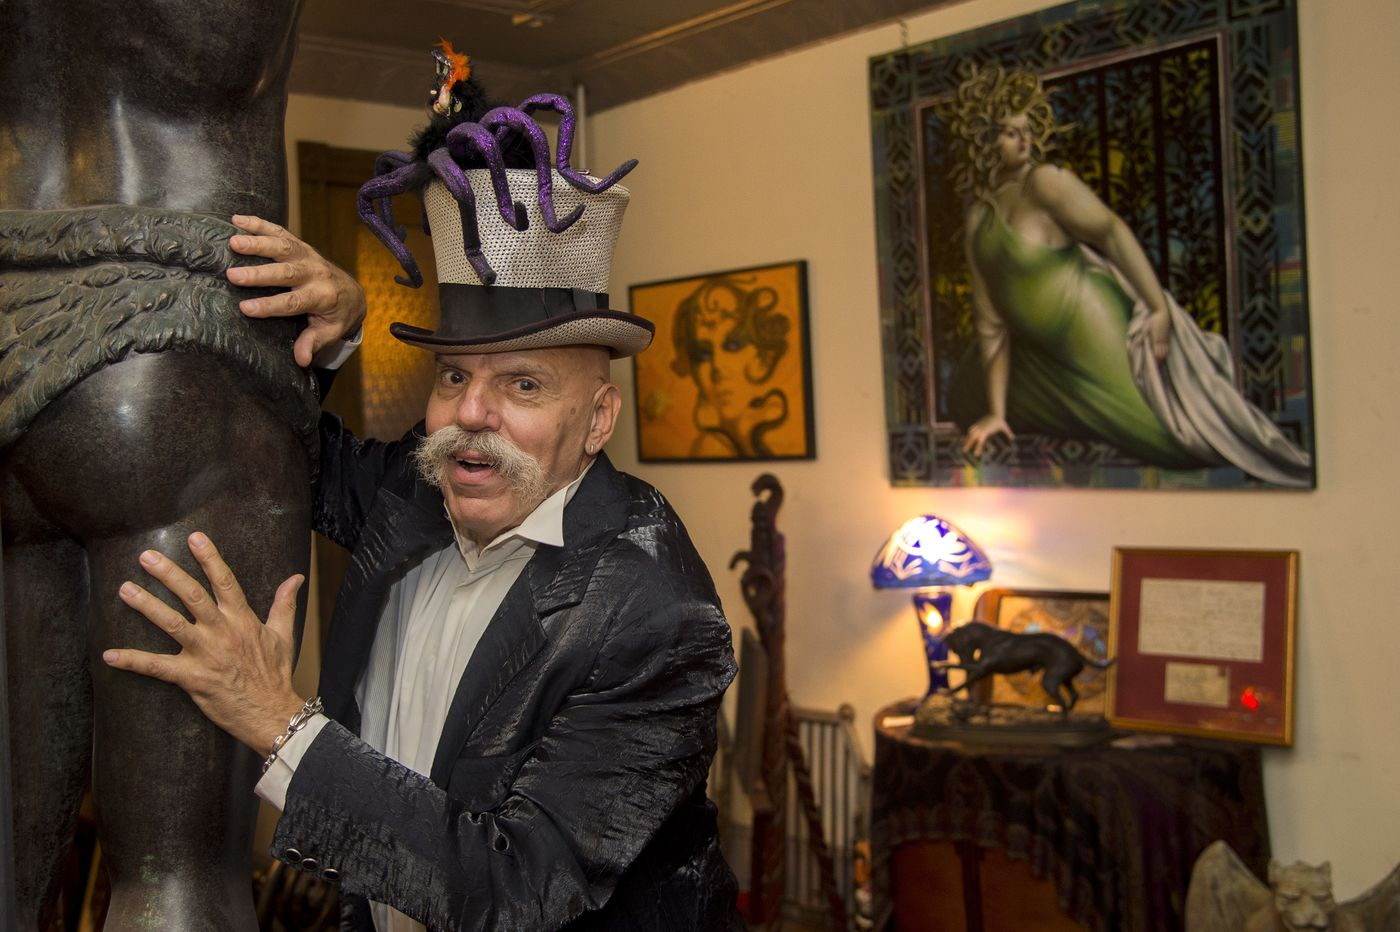 In 50 years of Halloween parties, Henri David is a gem | Stu Bykofsky